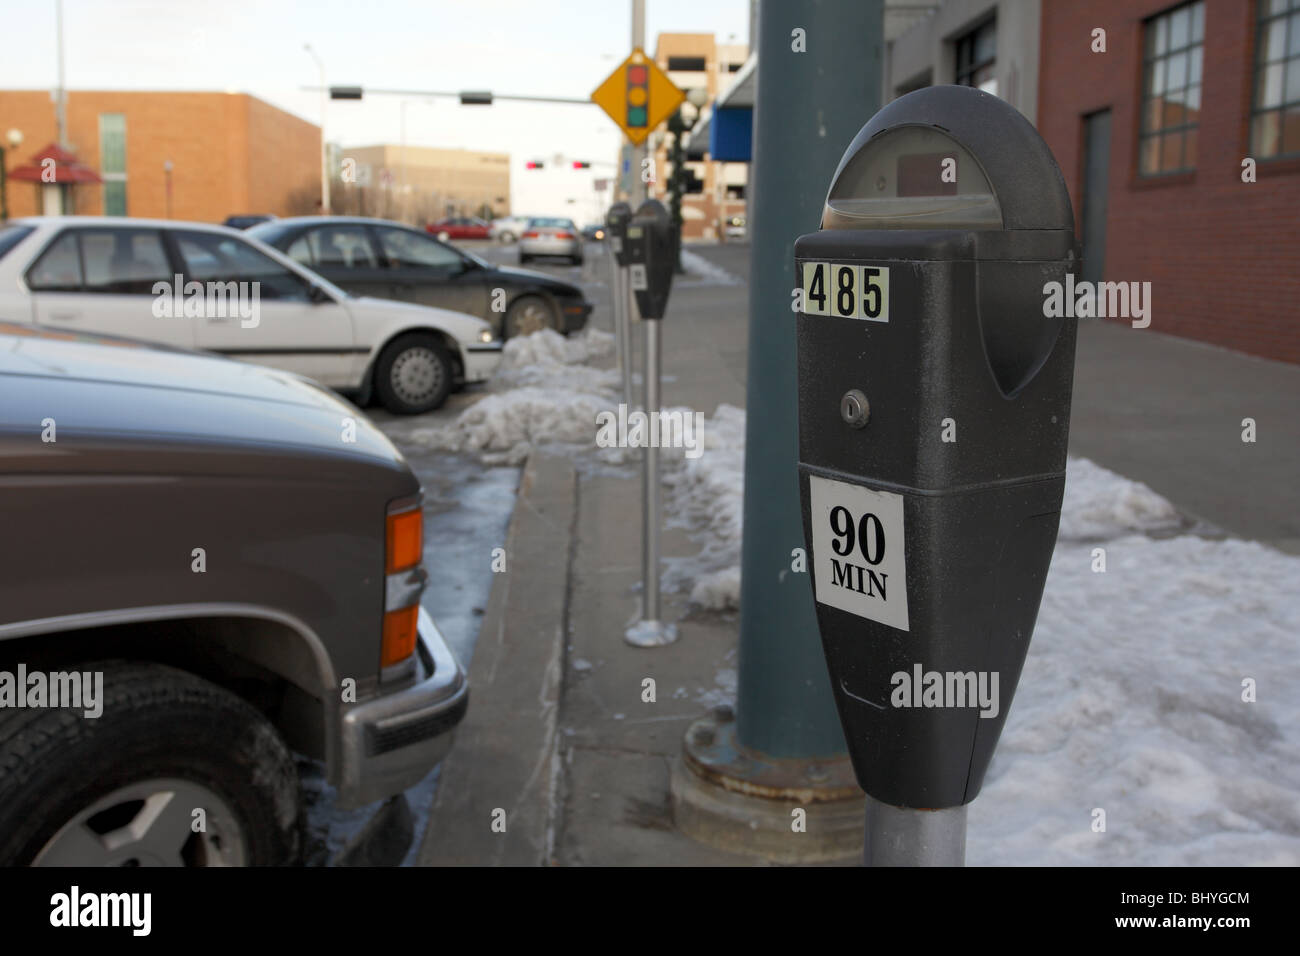 Parking meter on snowy urban street. - Stock Image